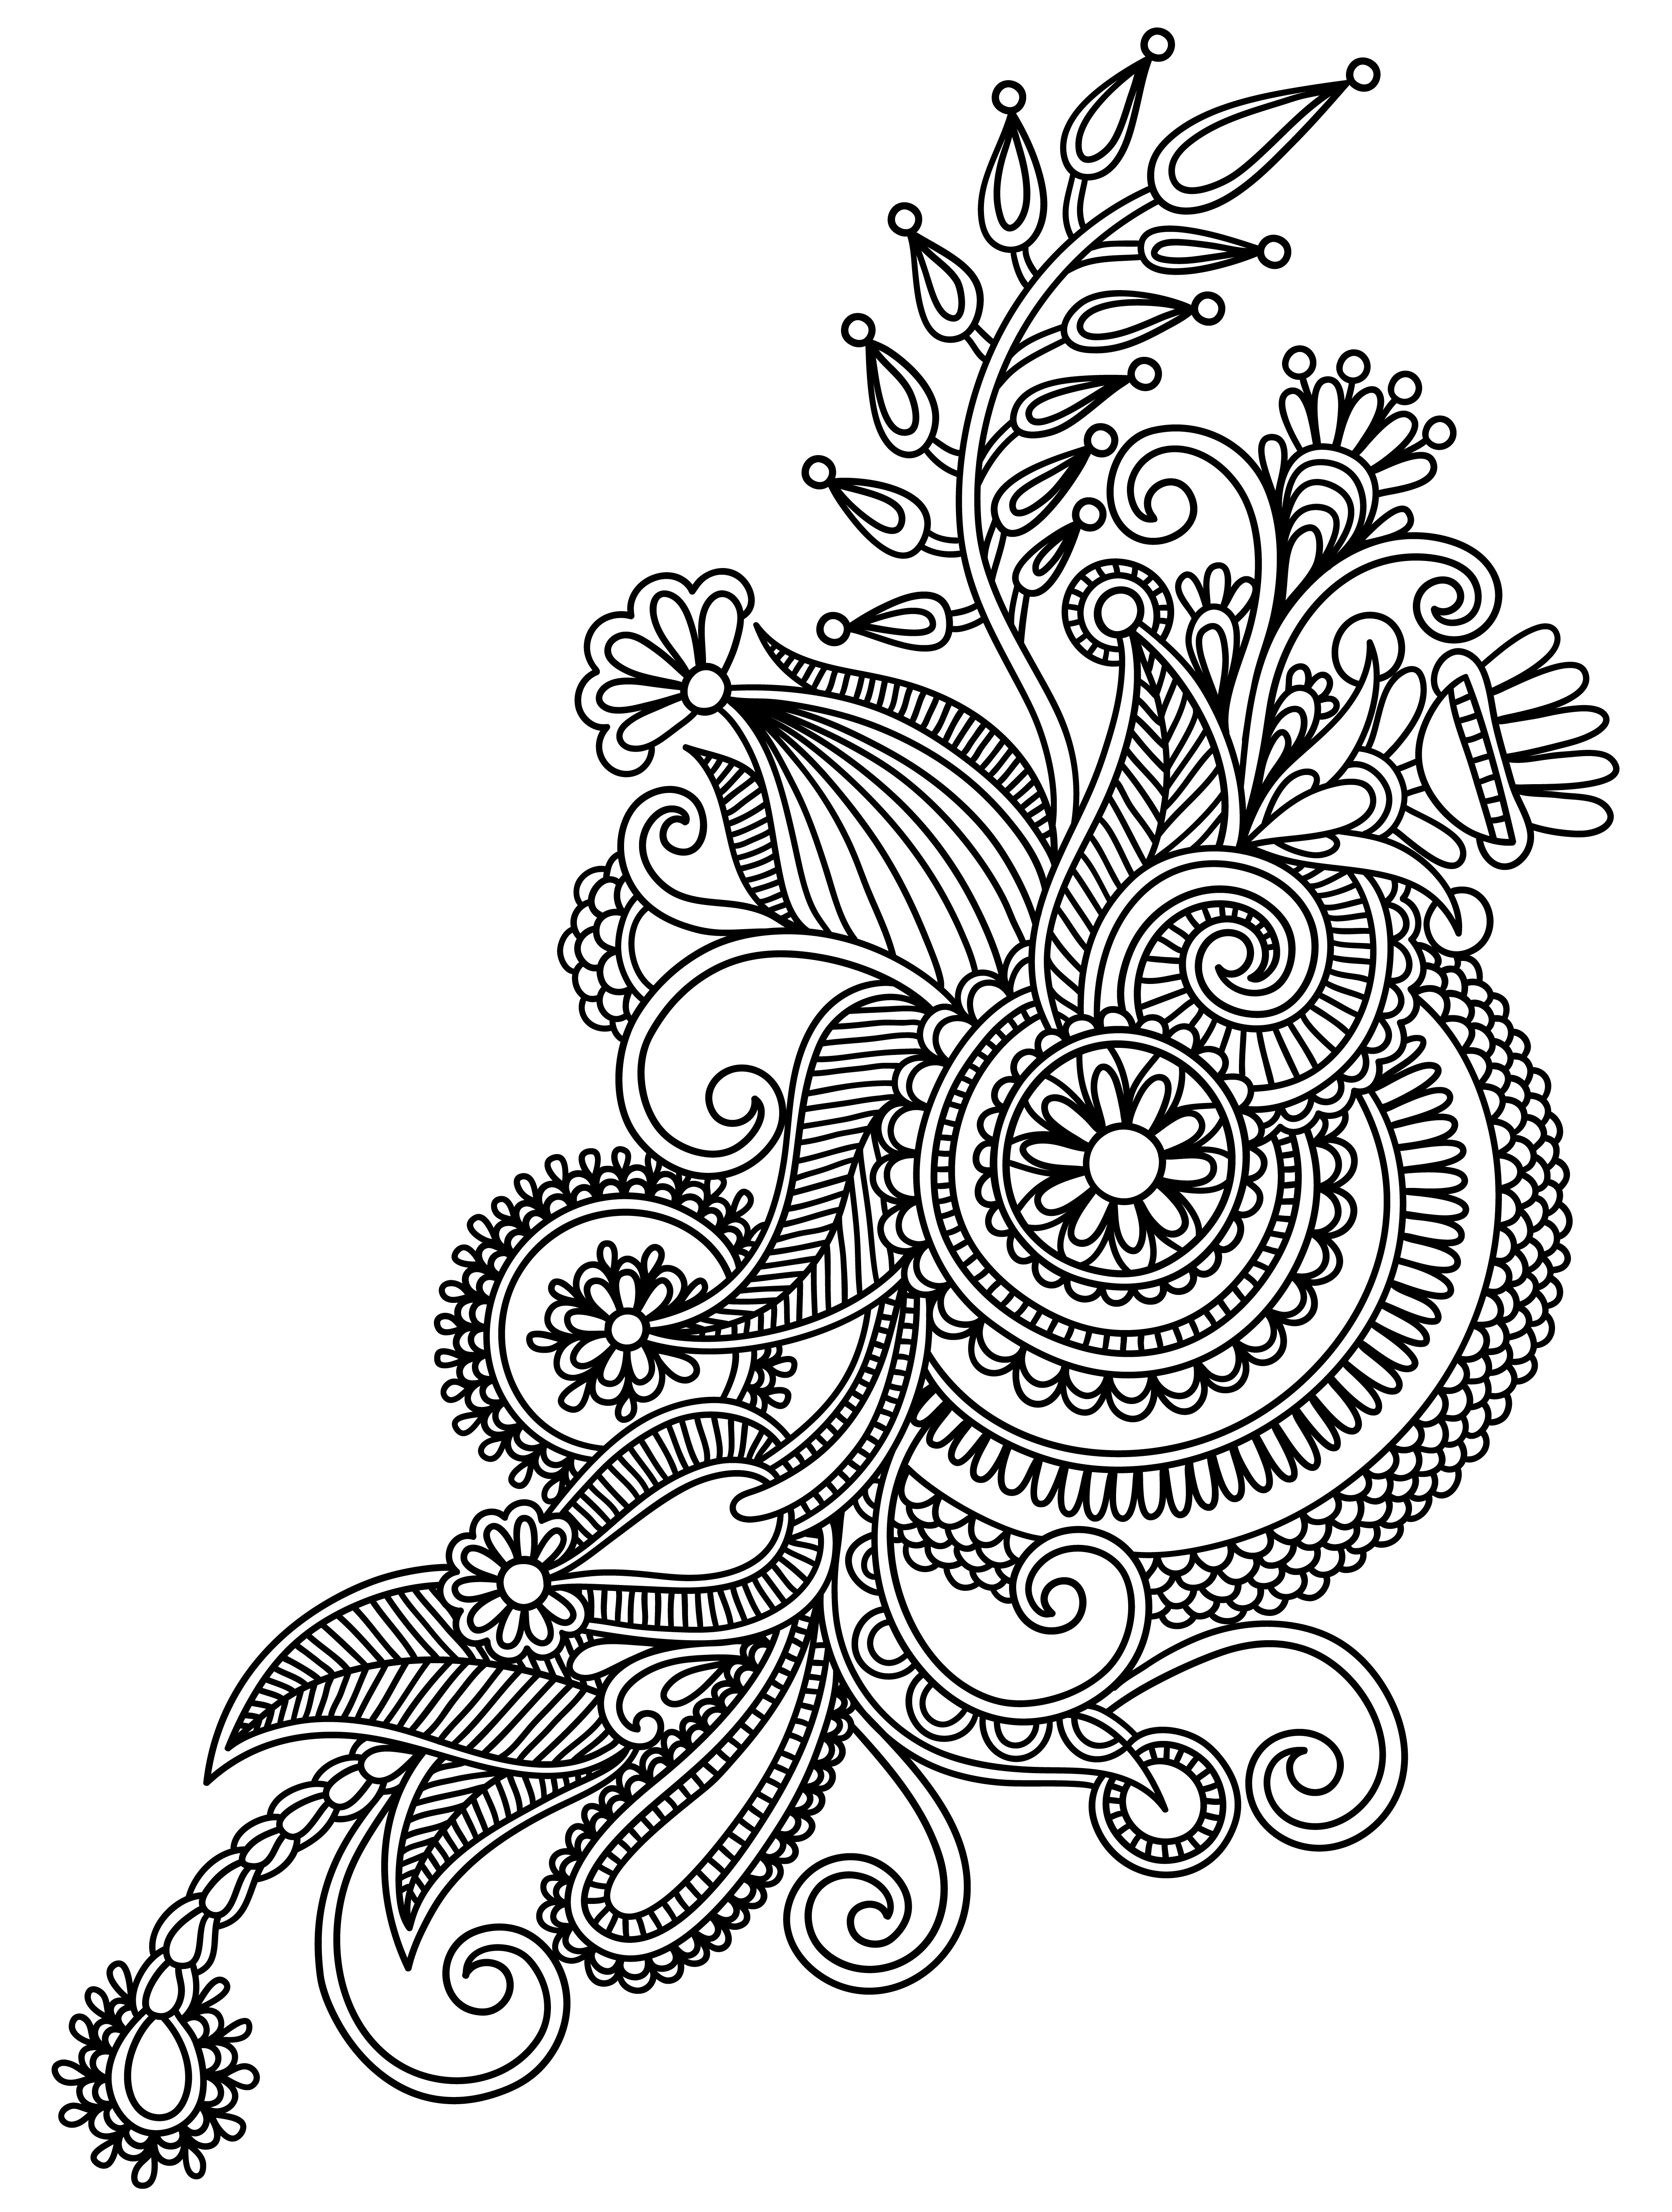 Relax coloring, Download Relax coloring for free 2019